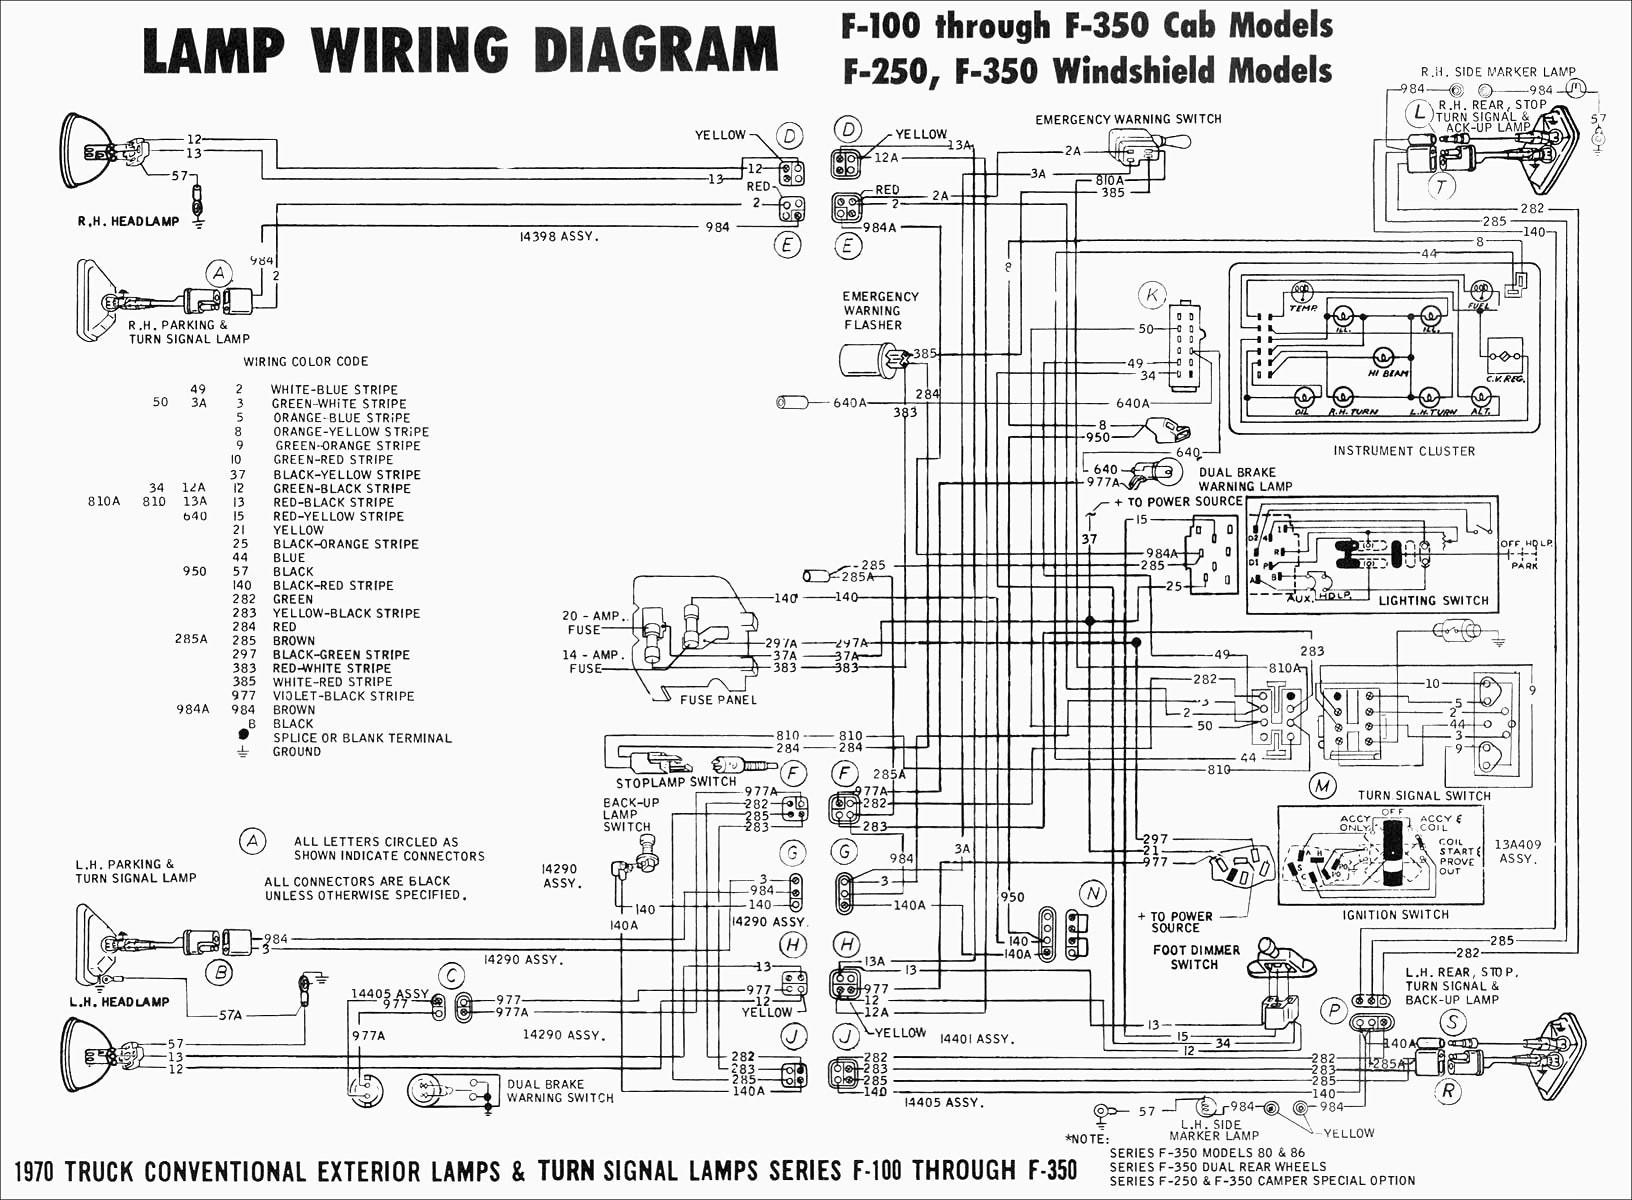 mtd ignition switch wiring diagram free wiring diagram. Black Bedroom Furniture Sets. Home Design Ideas